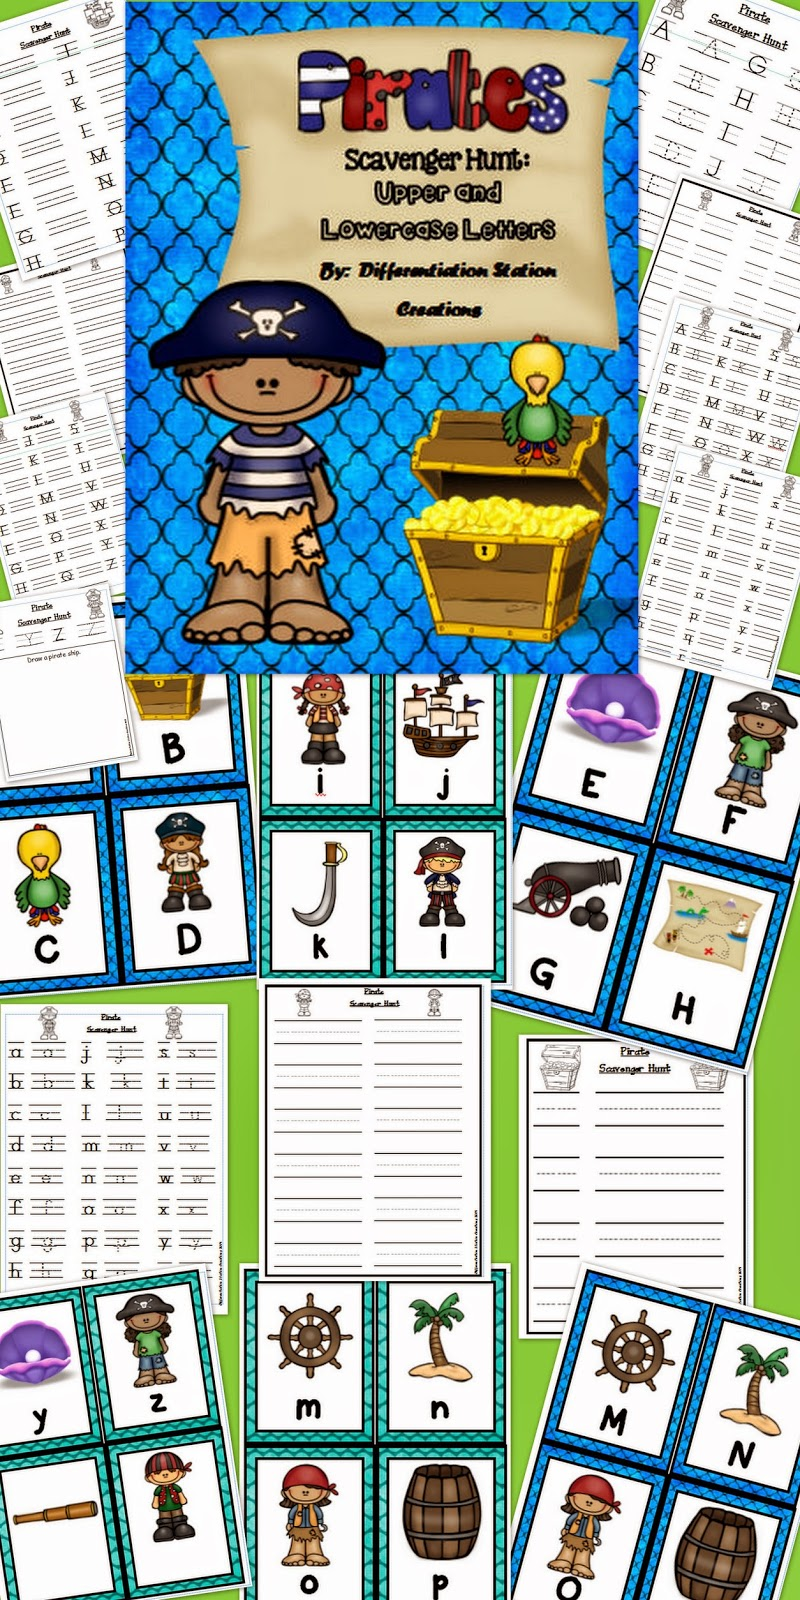 http://www.teacherspayteachers.com/Product/Pirate-Scavenger-Hunt-Uppercase-and-Lowercase-Letters-Printables-1293755